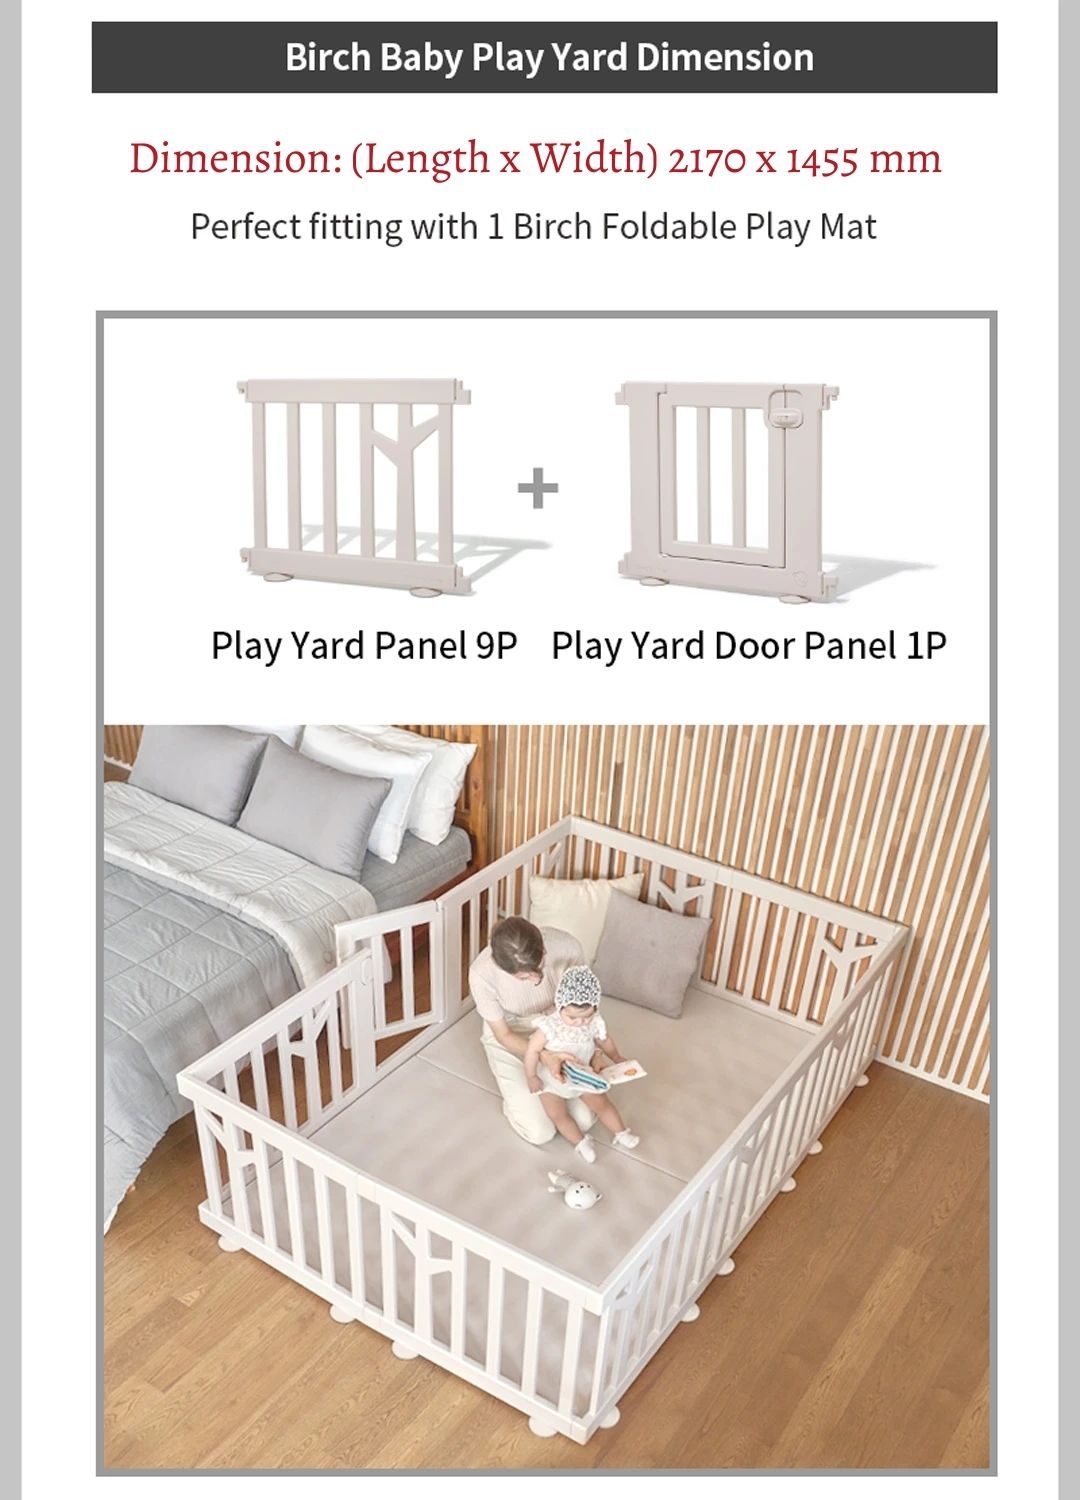 birch play yard 10pcs dimension